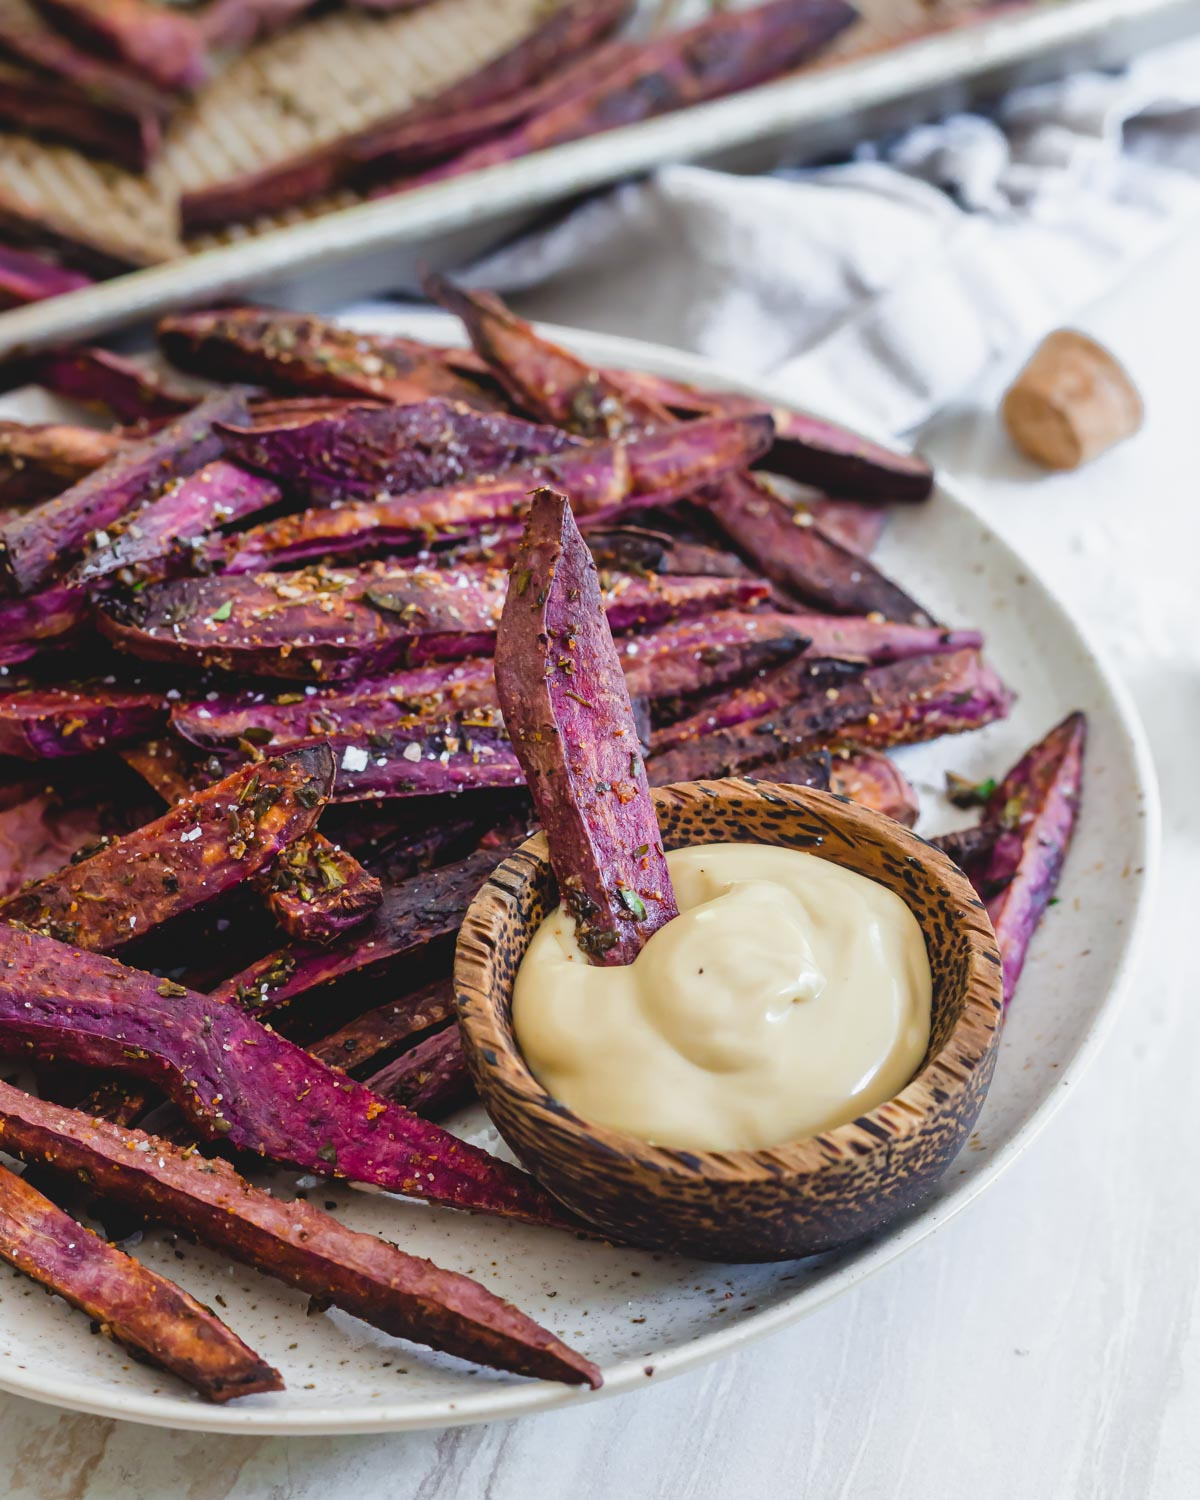 Oven baked purple sweet potato fries on a plate with mayo based dip.